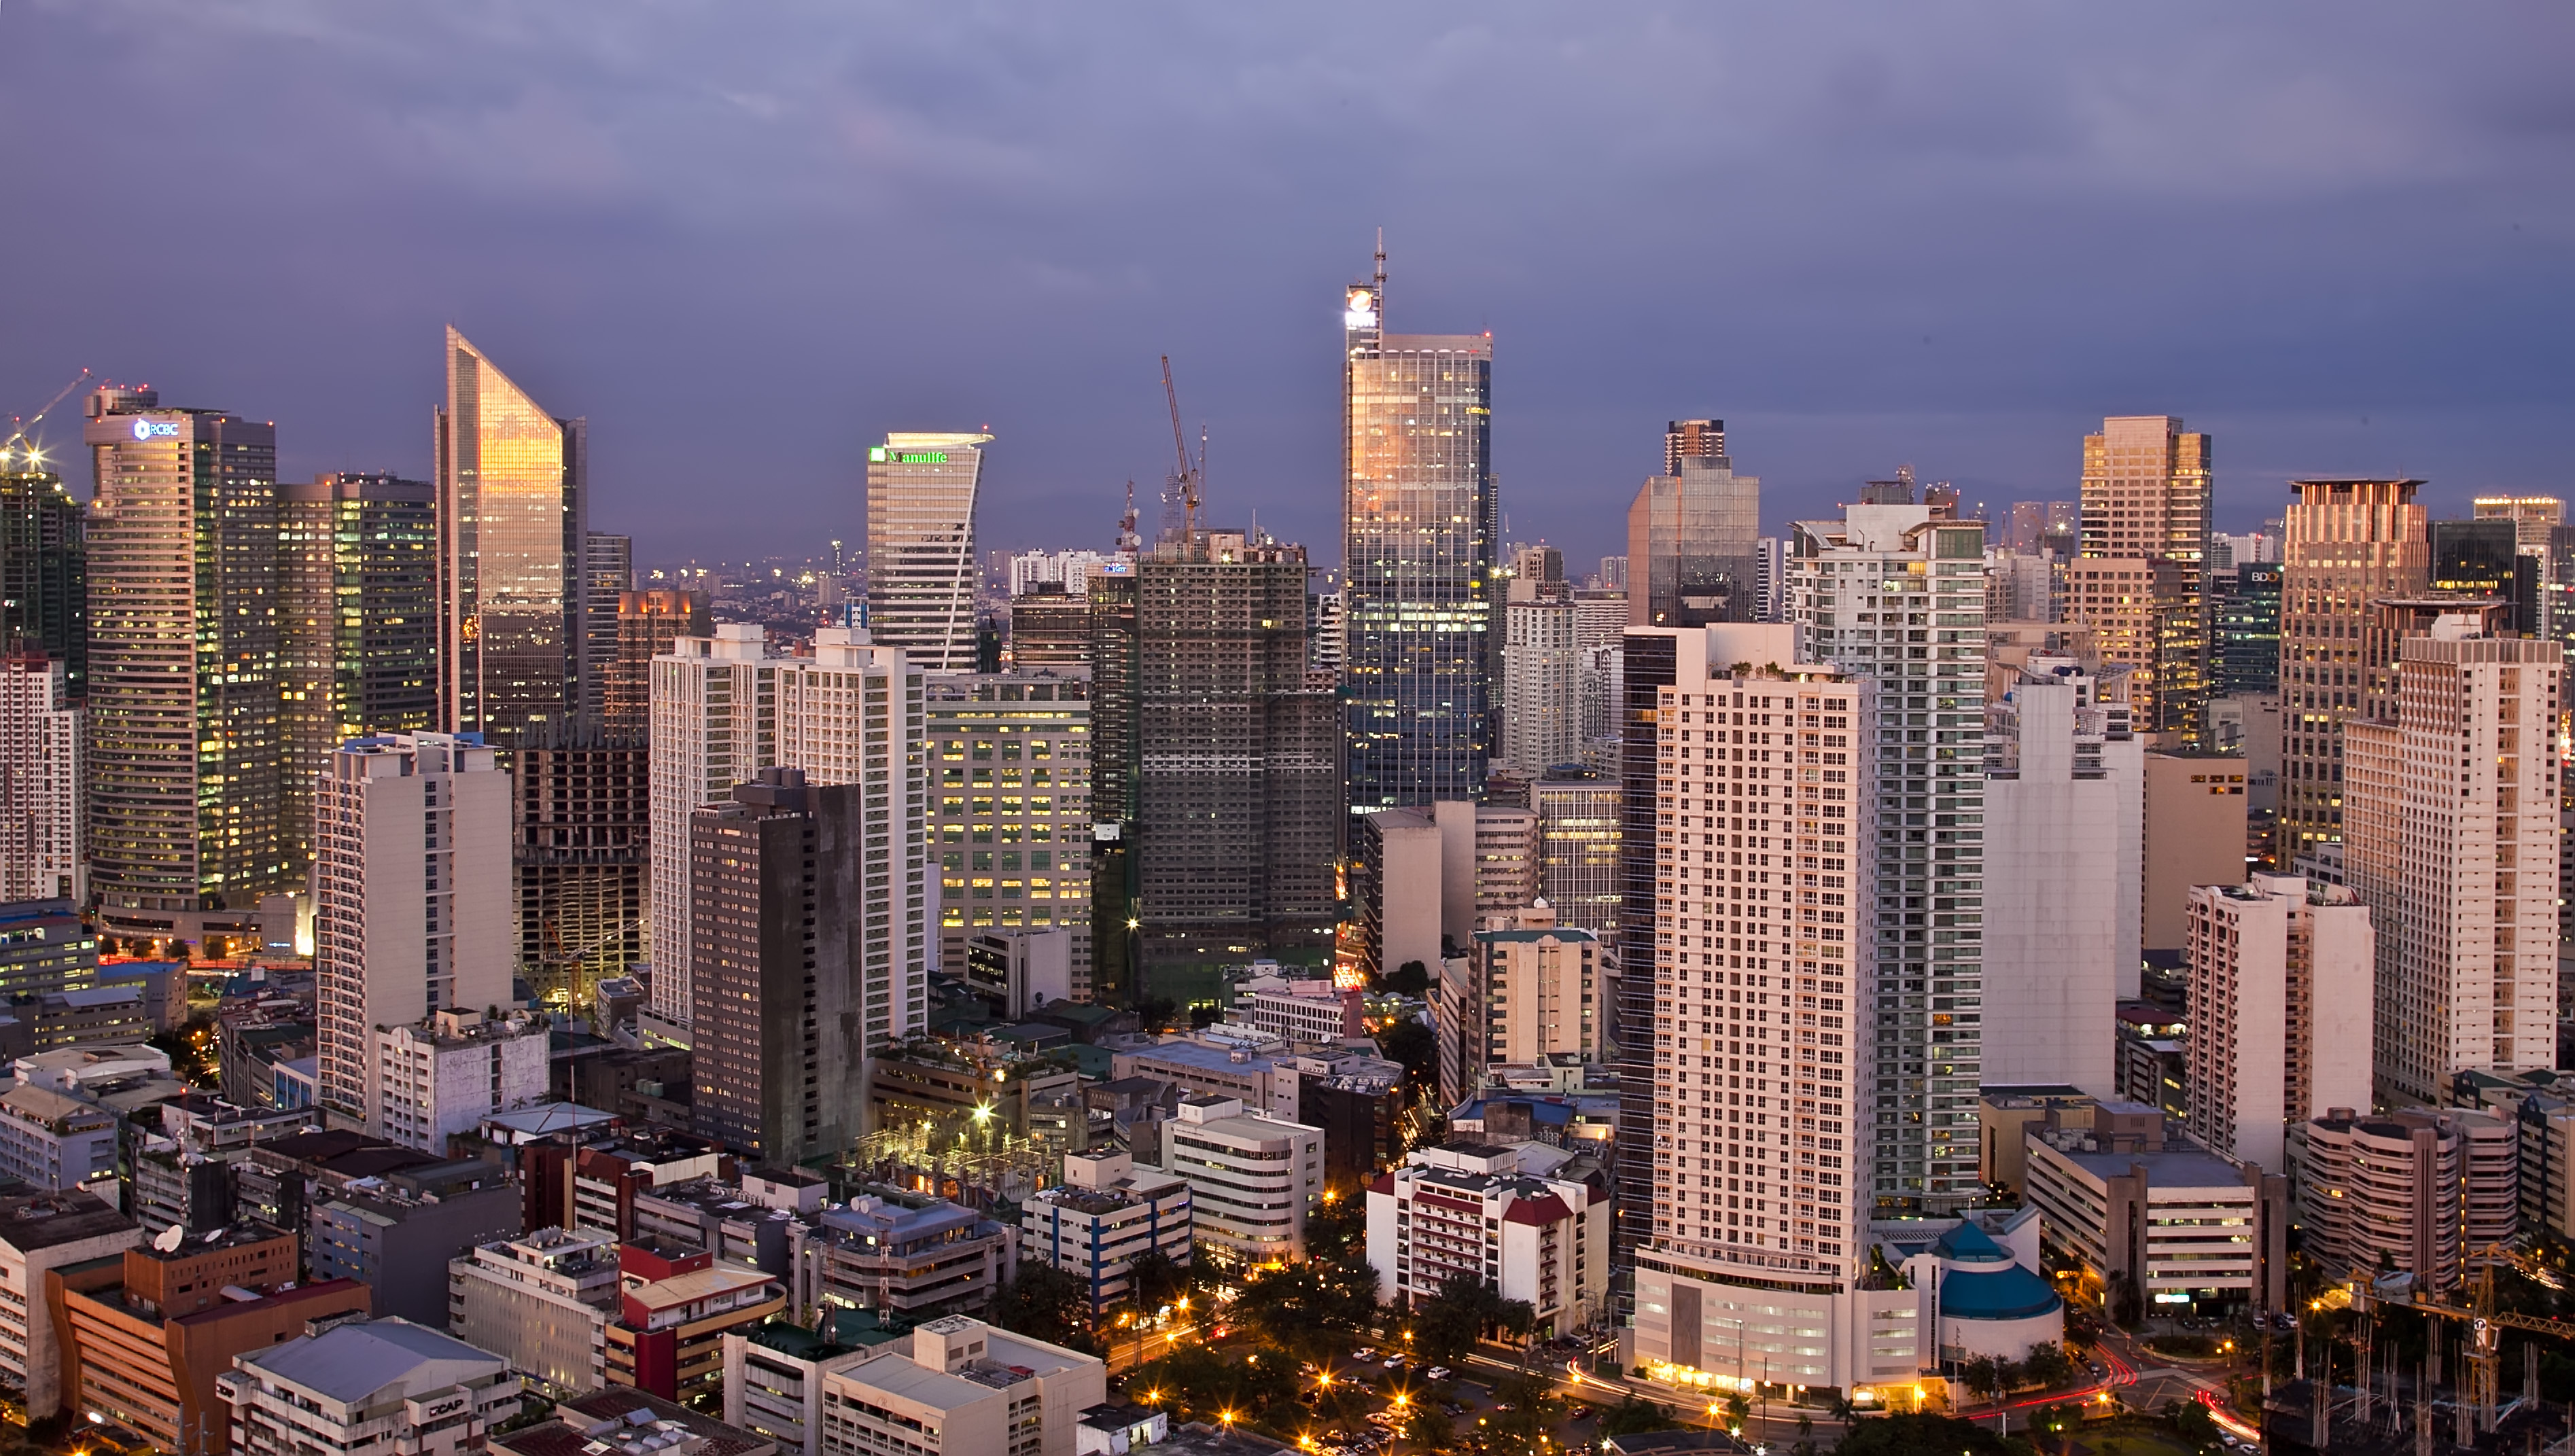 Manila remains 2nd in Super Cities ranking